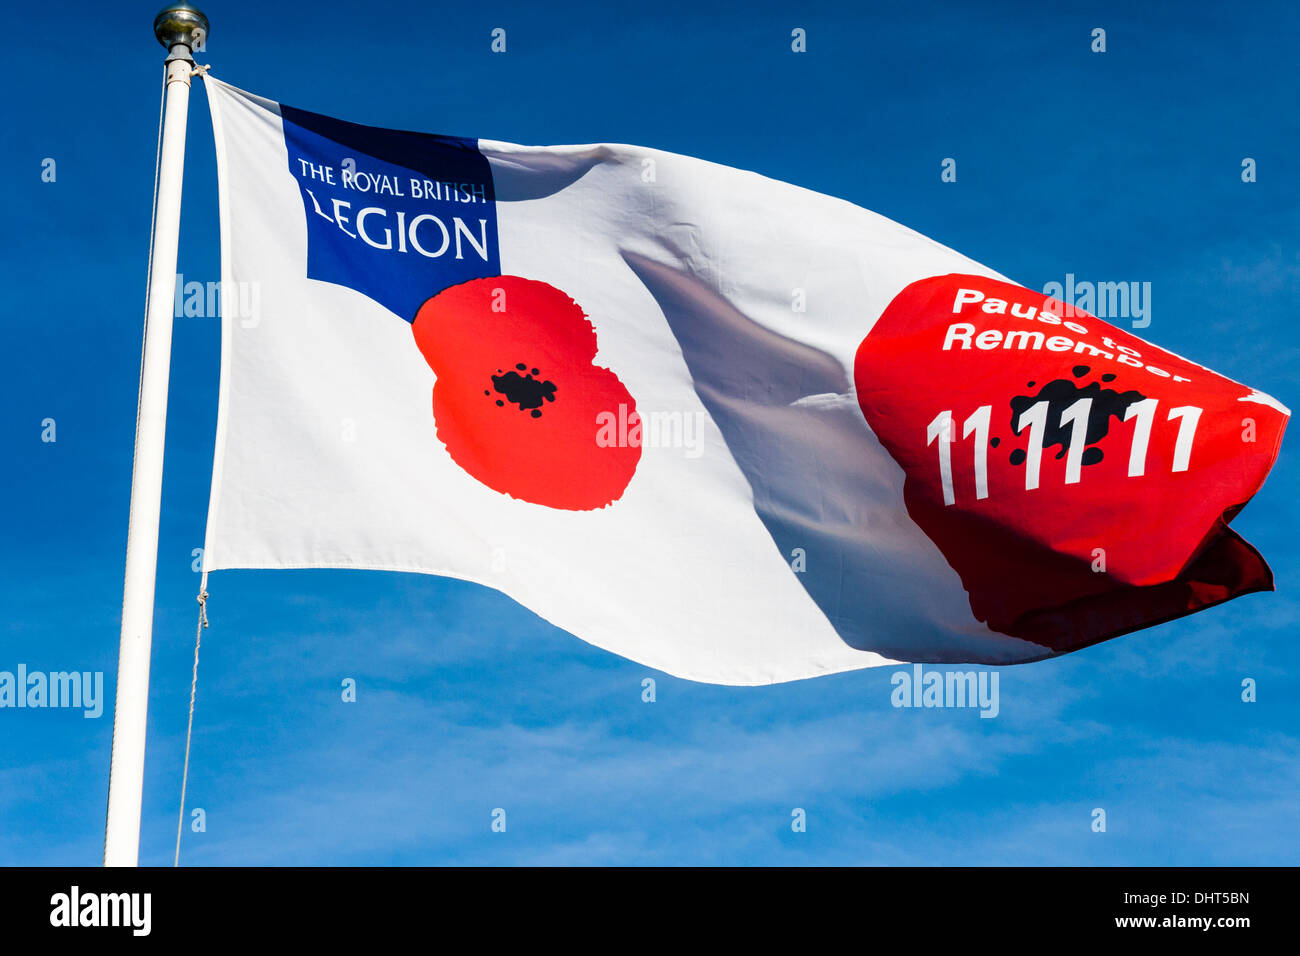 Royal British Legion flag flying in memory of the war dead, Remembrance Sunday - Stock Image